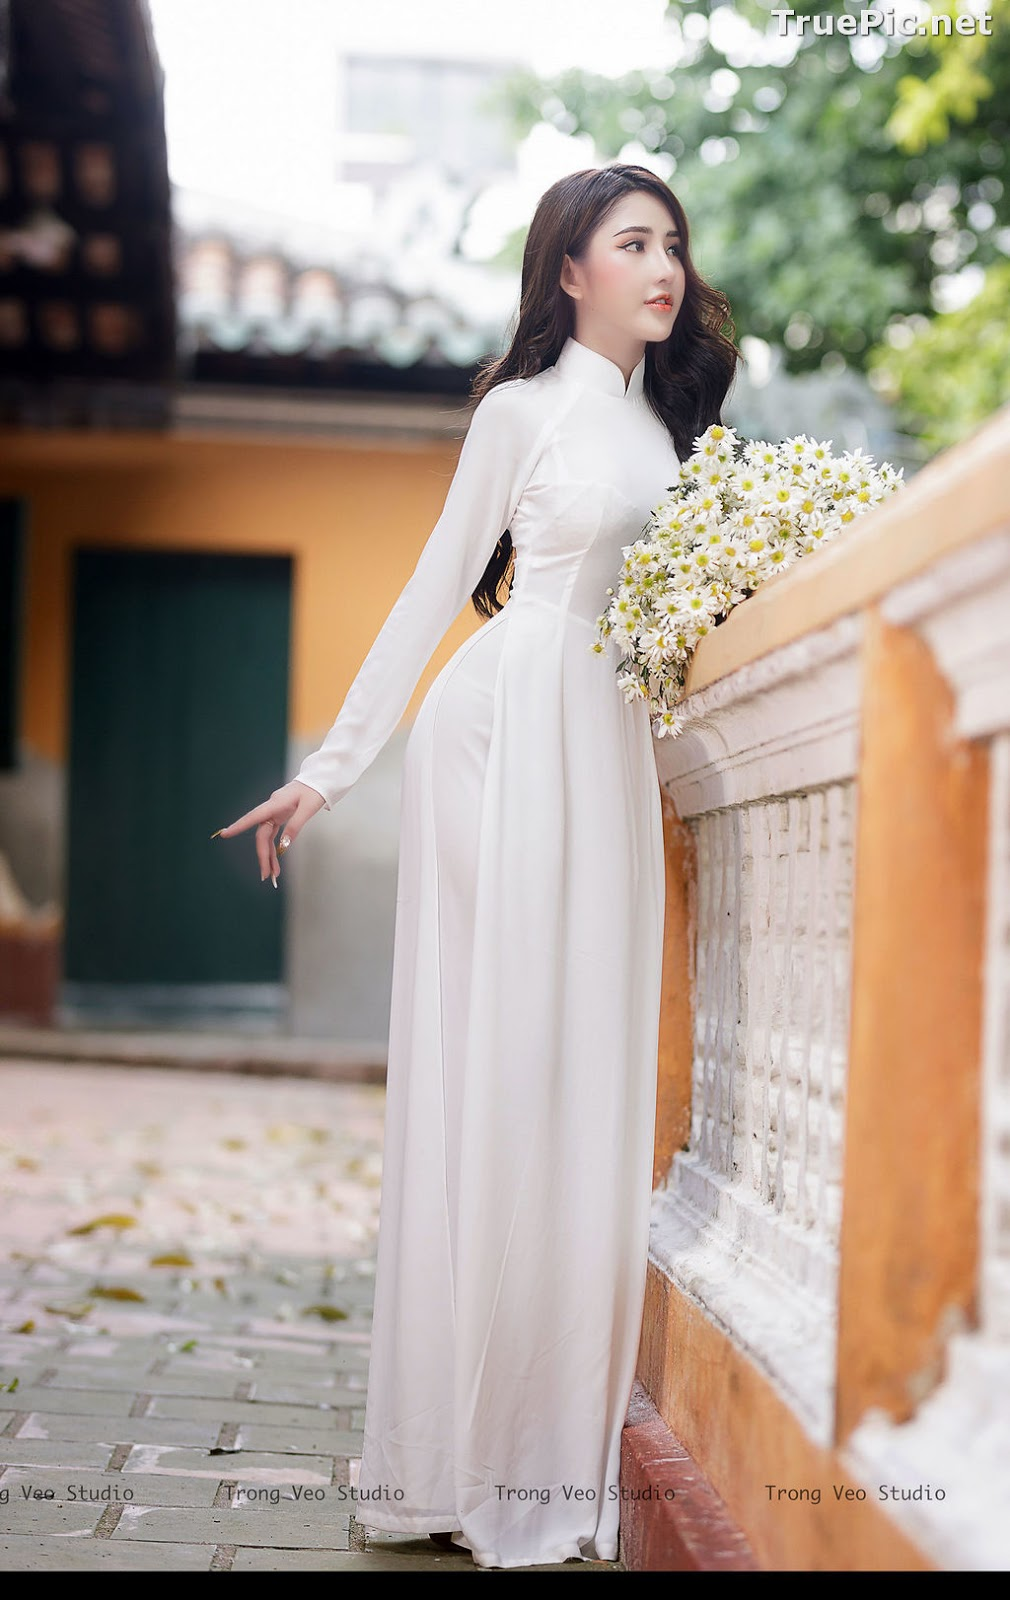 Image The Beauty of Vietnamese Girls with Traditional Dress (Ao Dai) #3 - TruePic.net - Picture-10